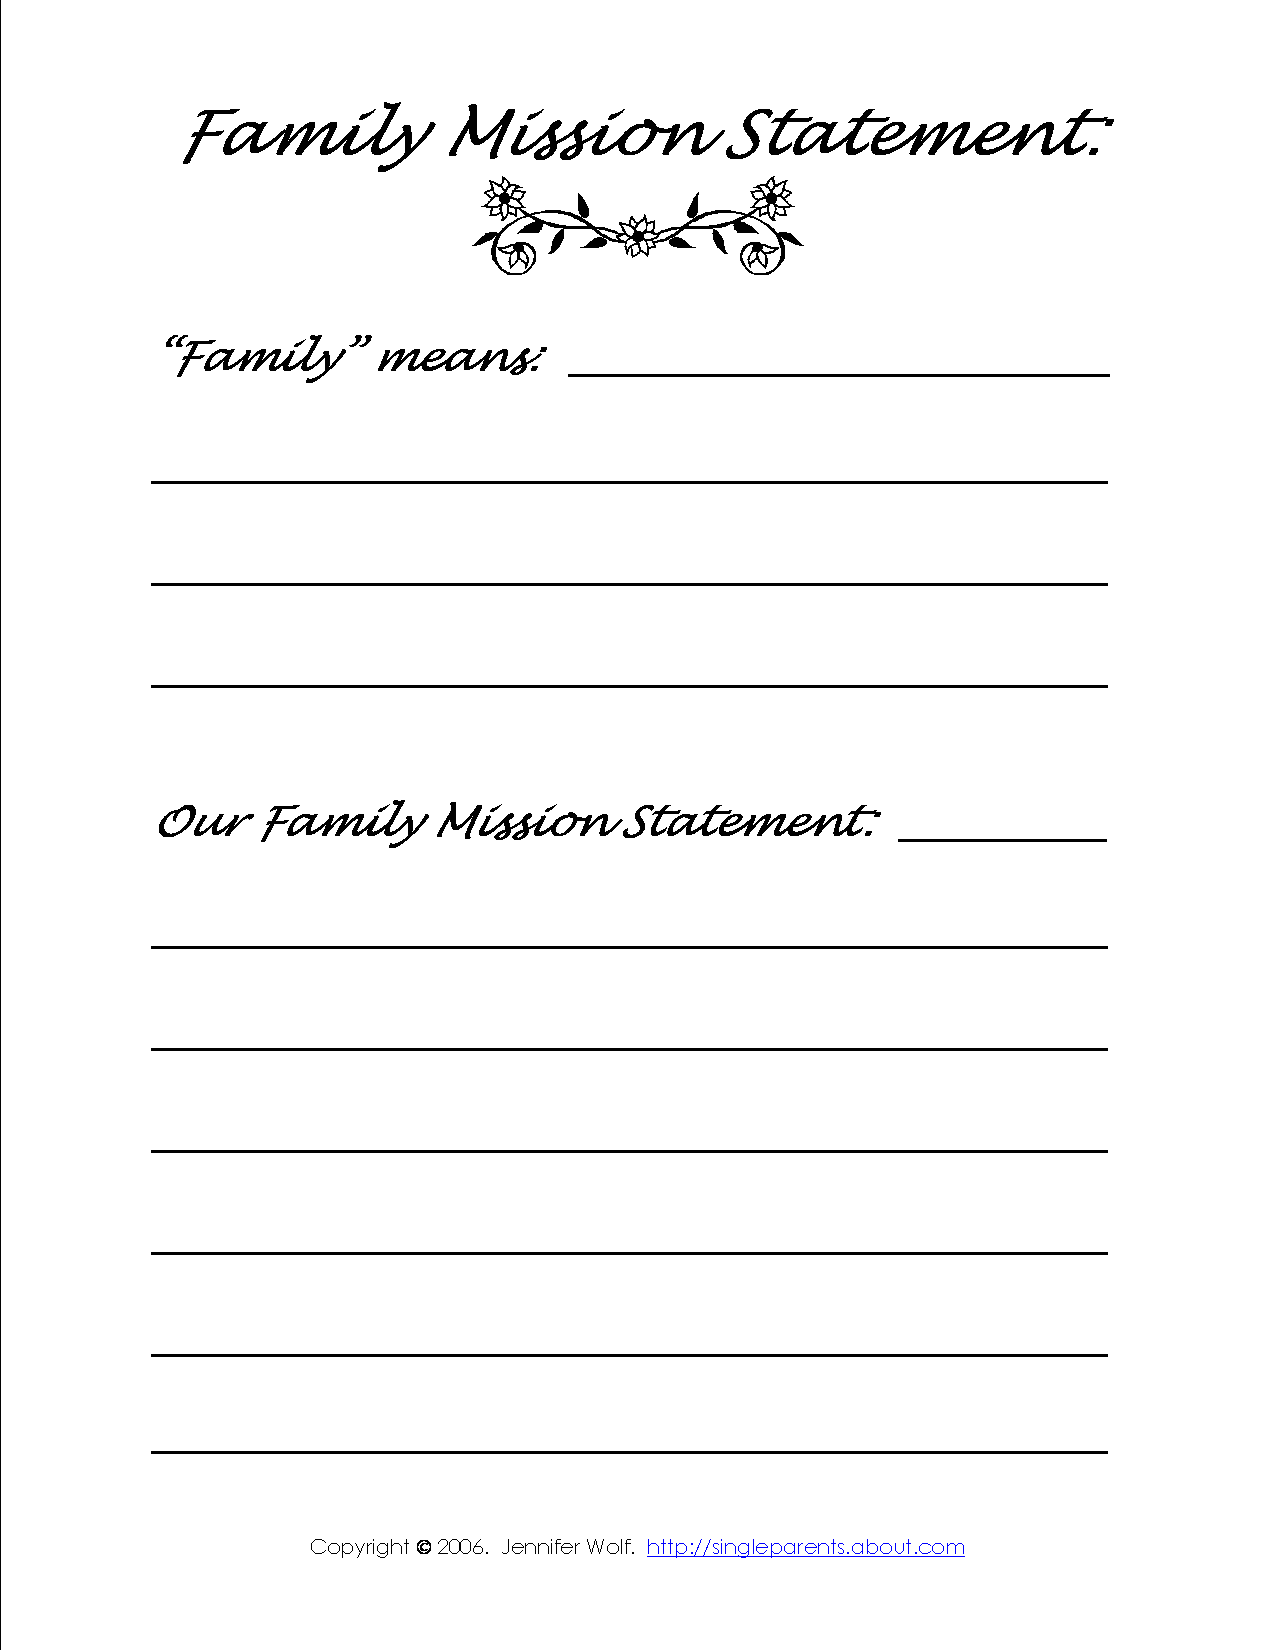 how to use persuasive words phrases and arguments how to write a family mission statement